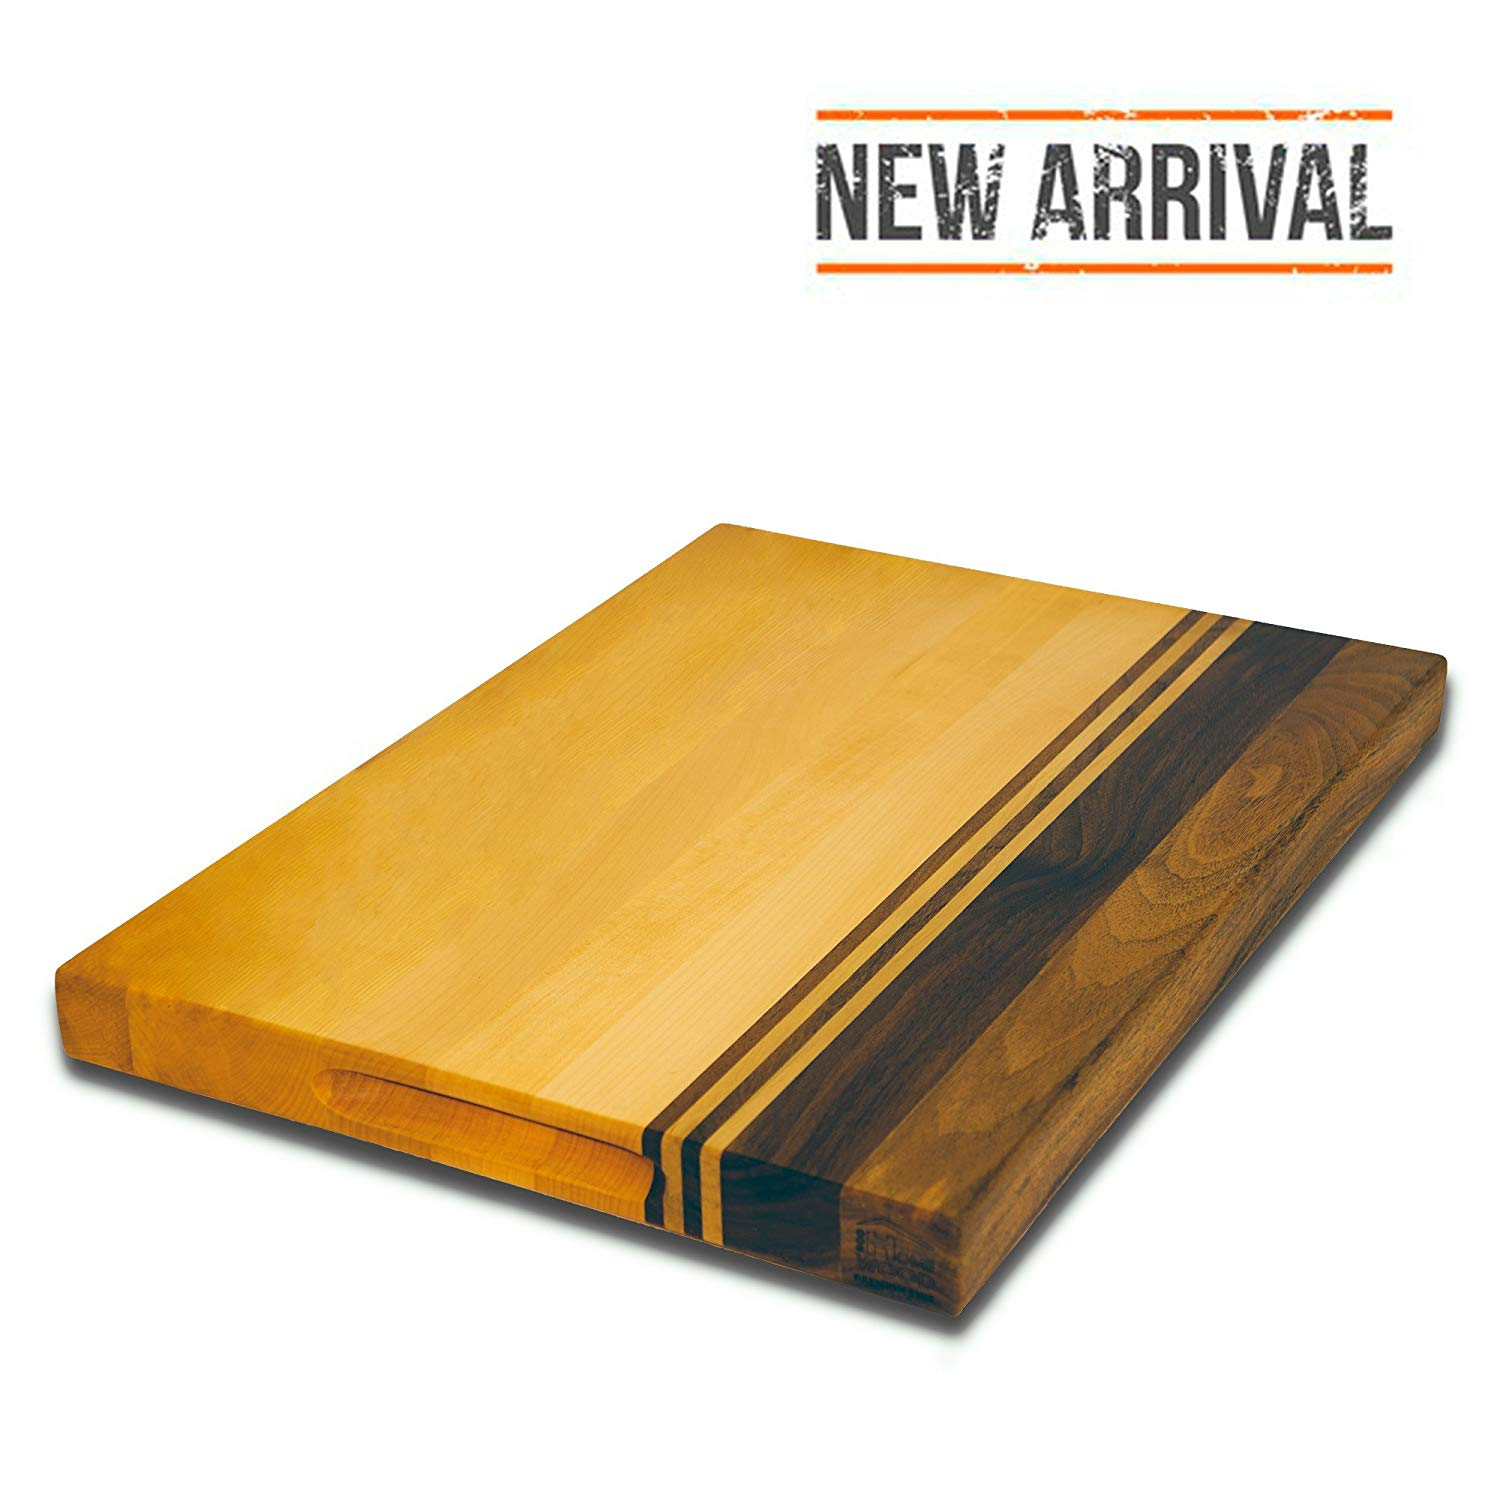 Cheap Diy Wooden Chopping Board Find Diy Wooden Chopping Board Deals On Line At Alibaba Com